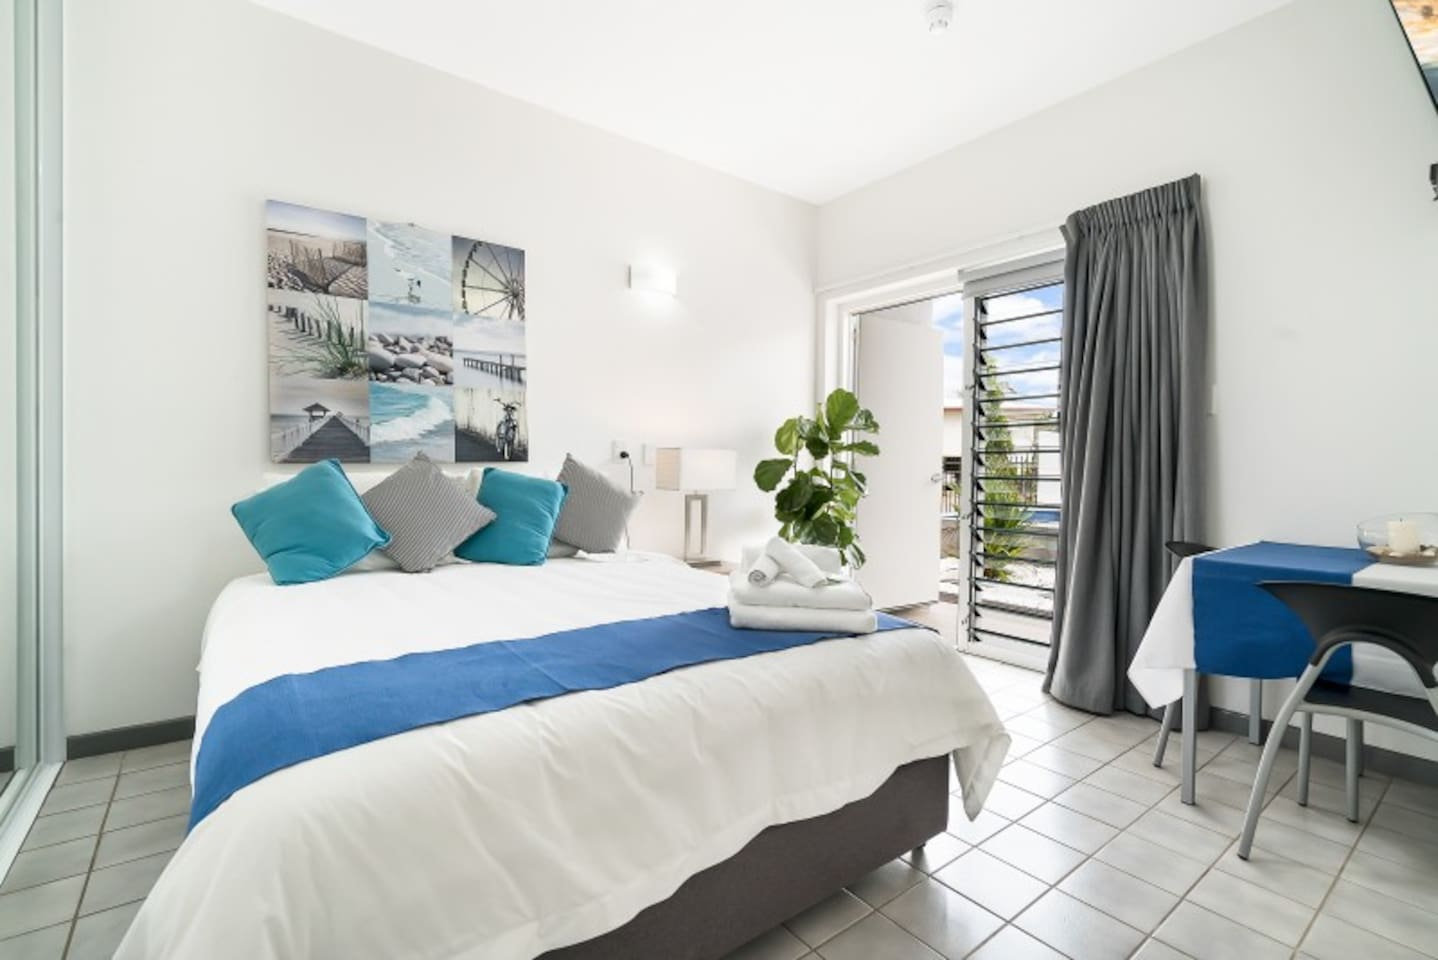 Feel right at home with 50 modern and spacious serviced studio apartments to choose from.